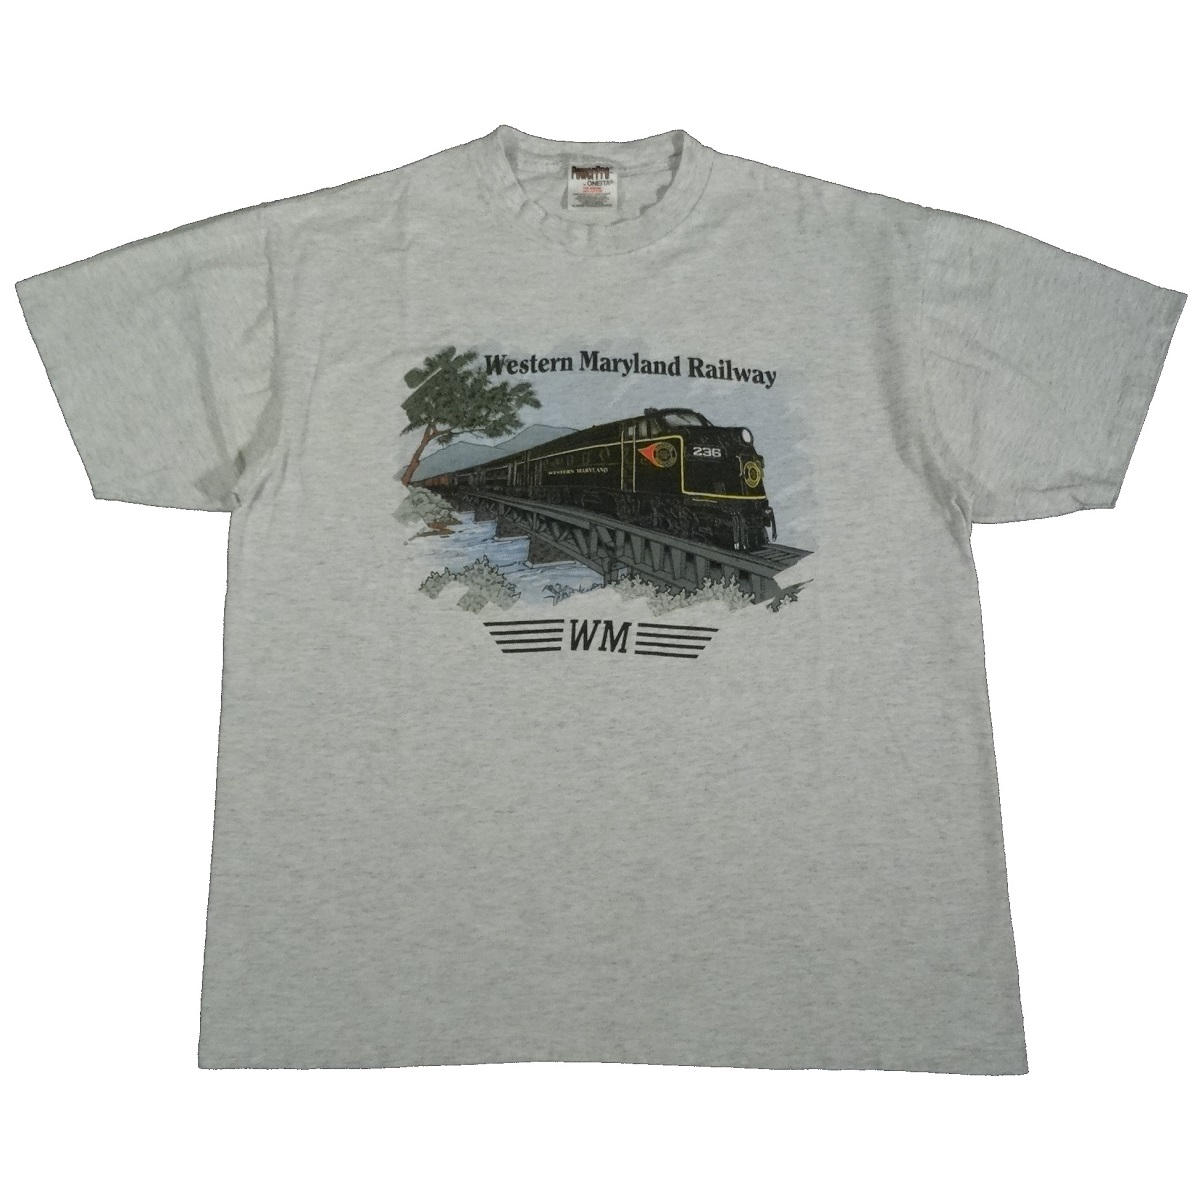 western maryland railway vintage t shirt front of shirt